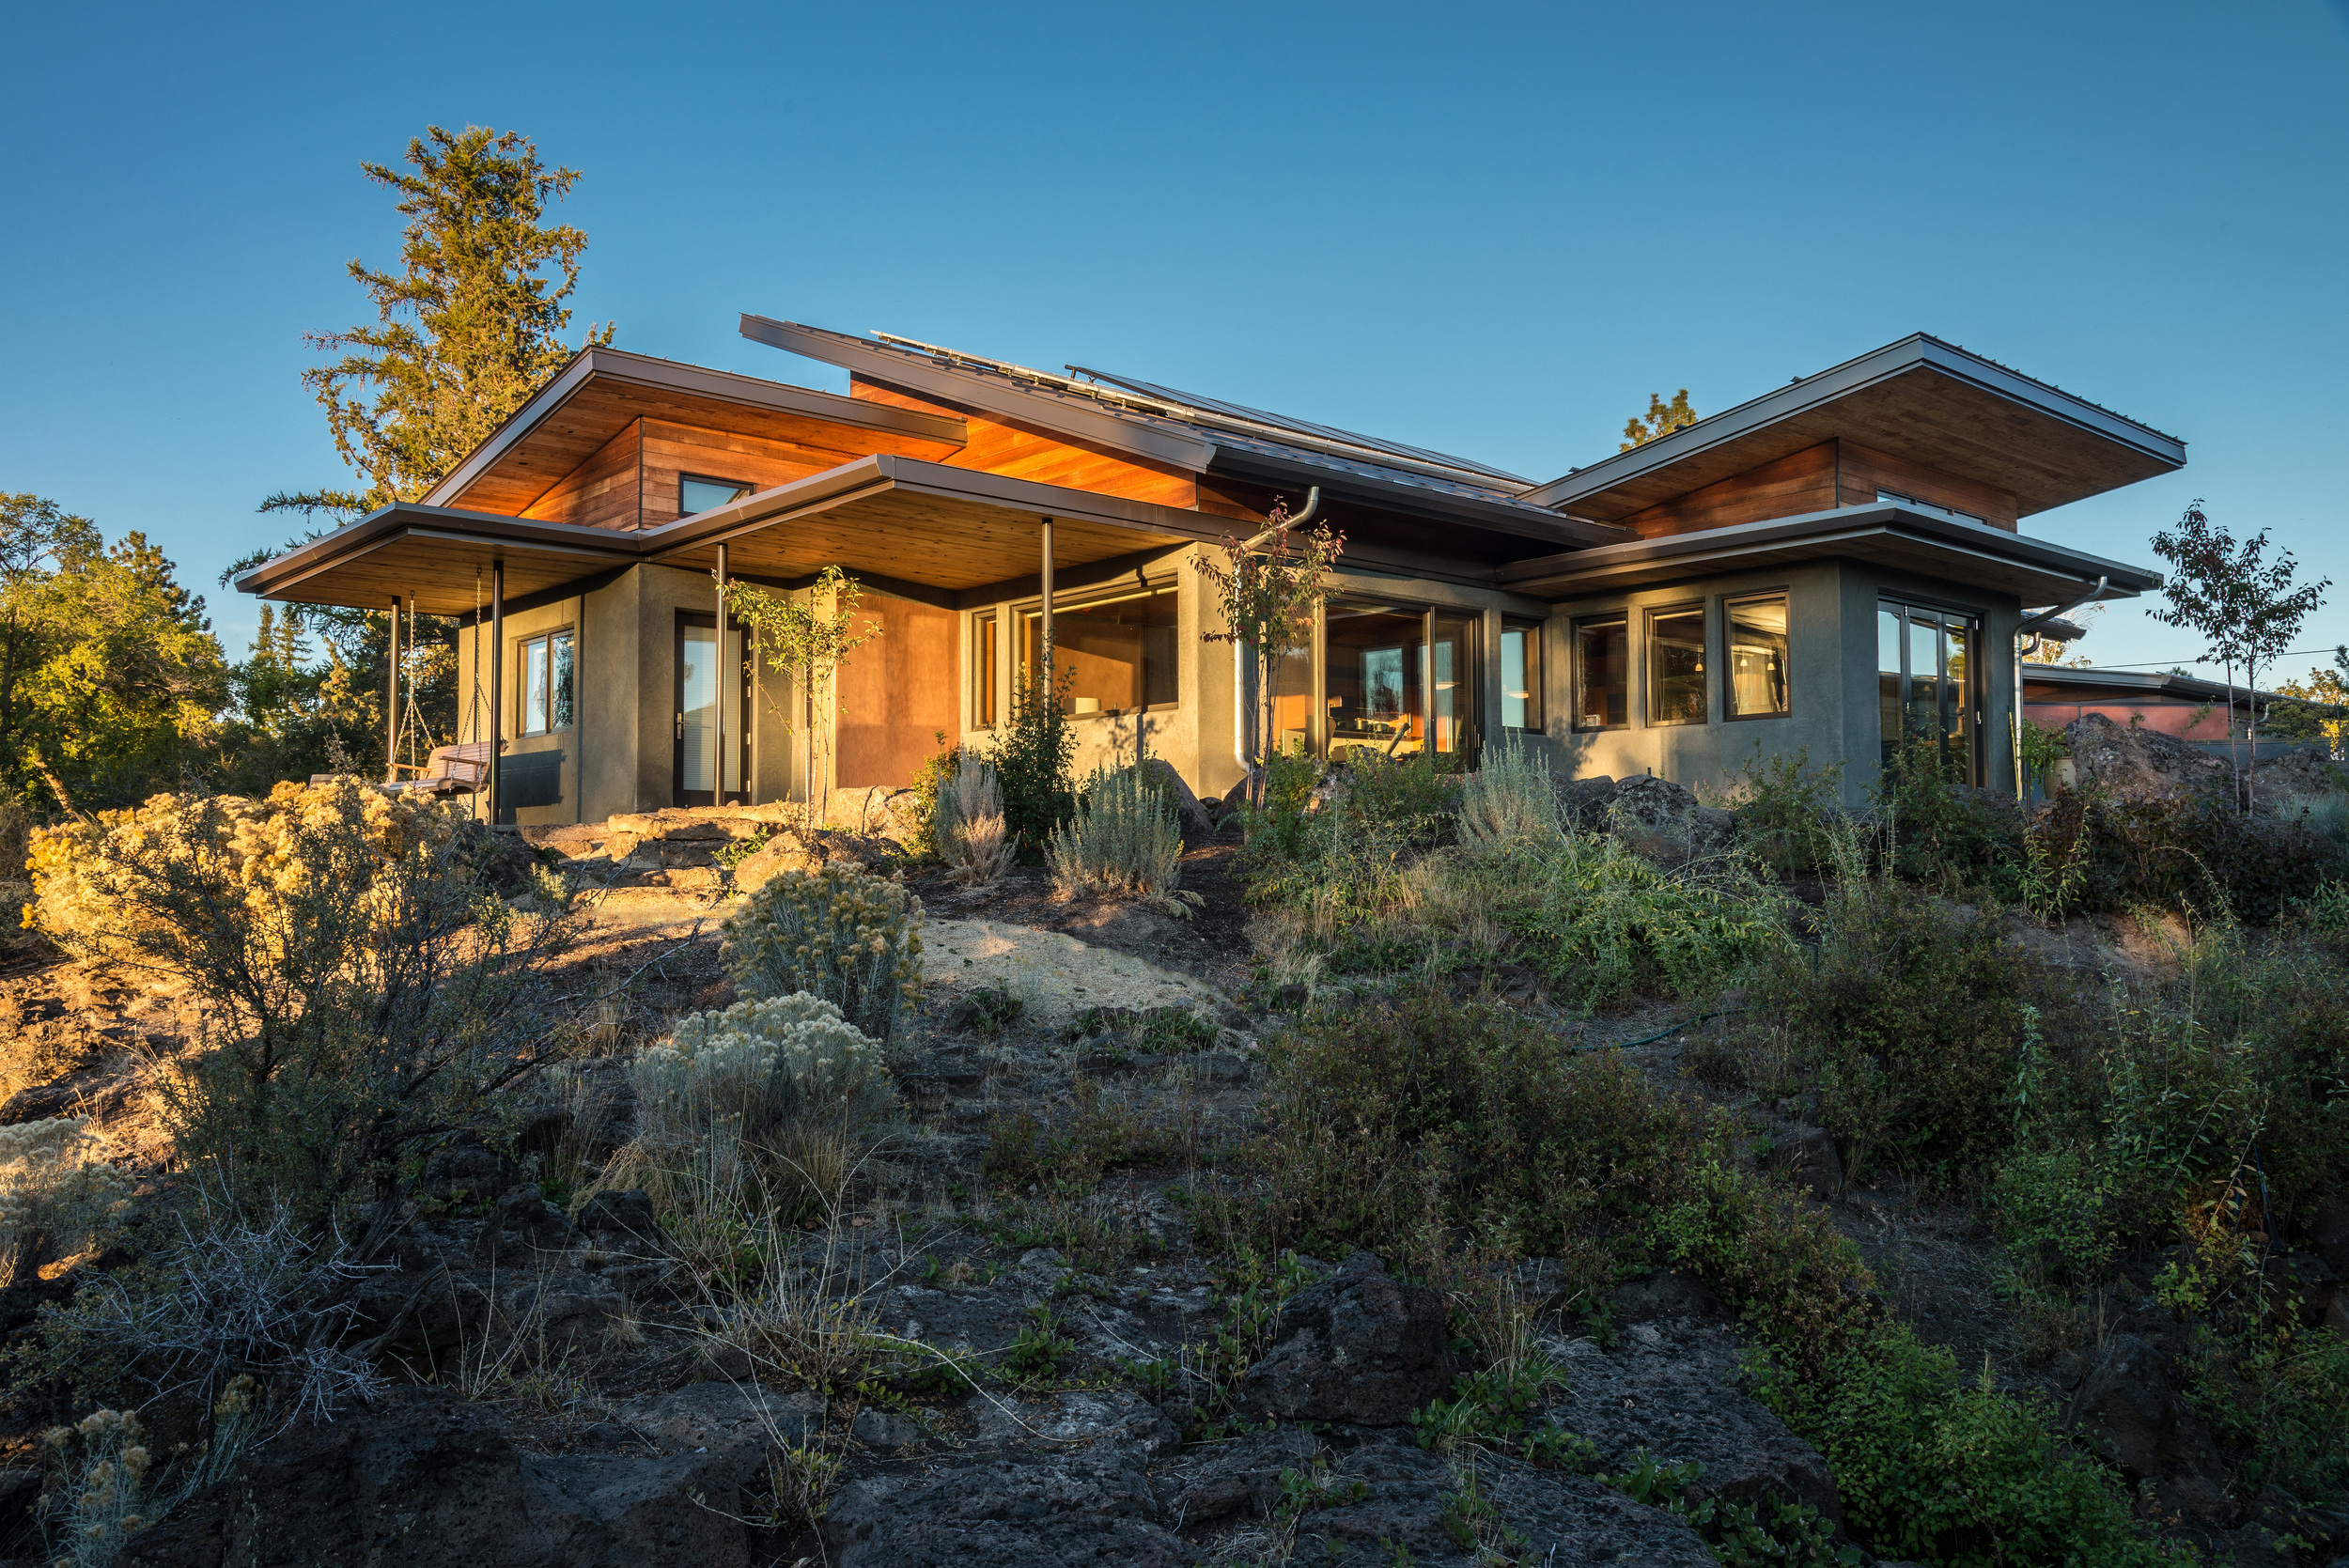 Desert Rain.  A Living Building residence in Bend Oregon.  Click on the image for more information.  Photo by Dorothy Freudenberg